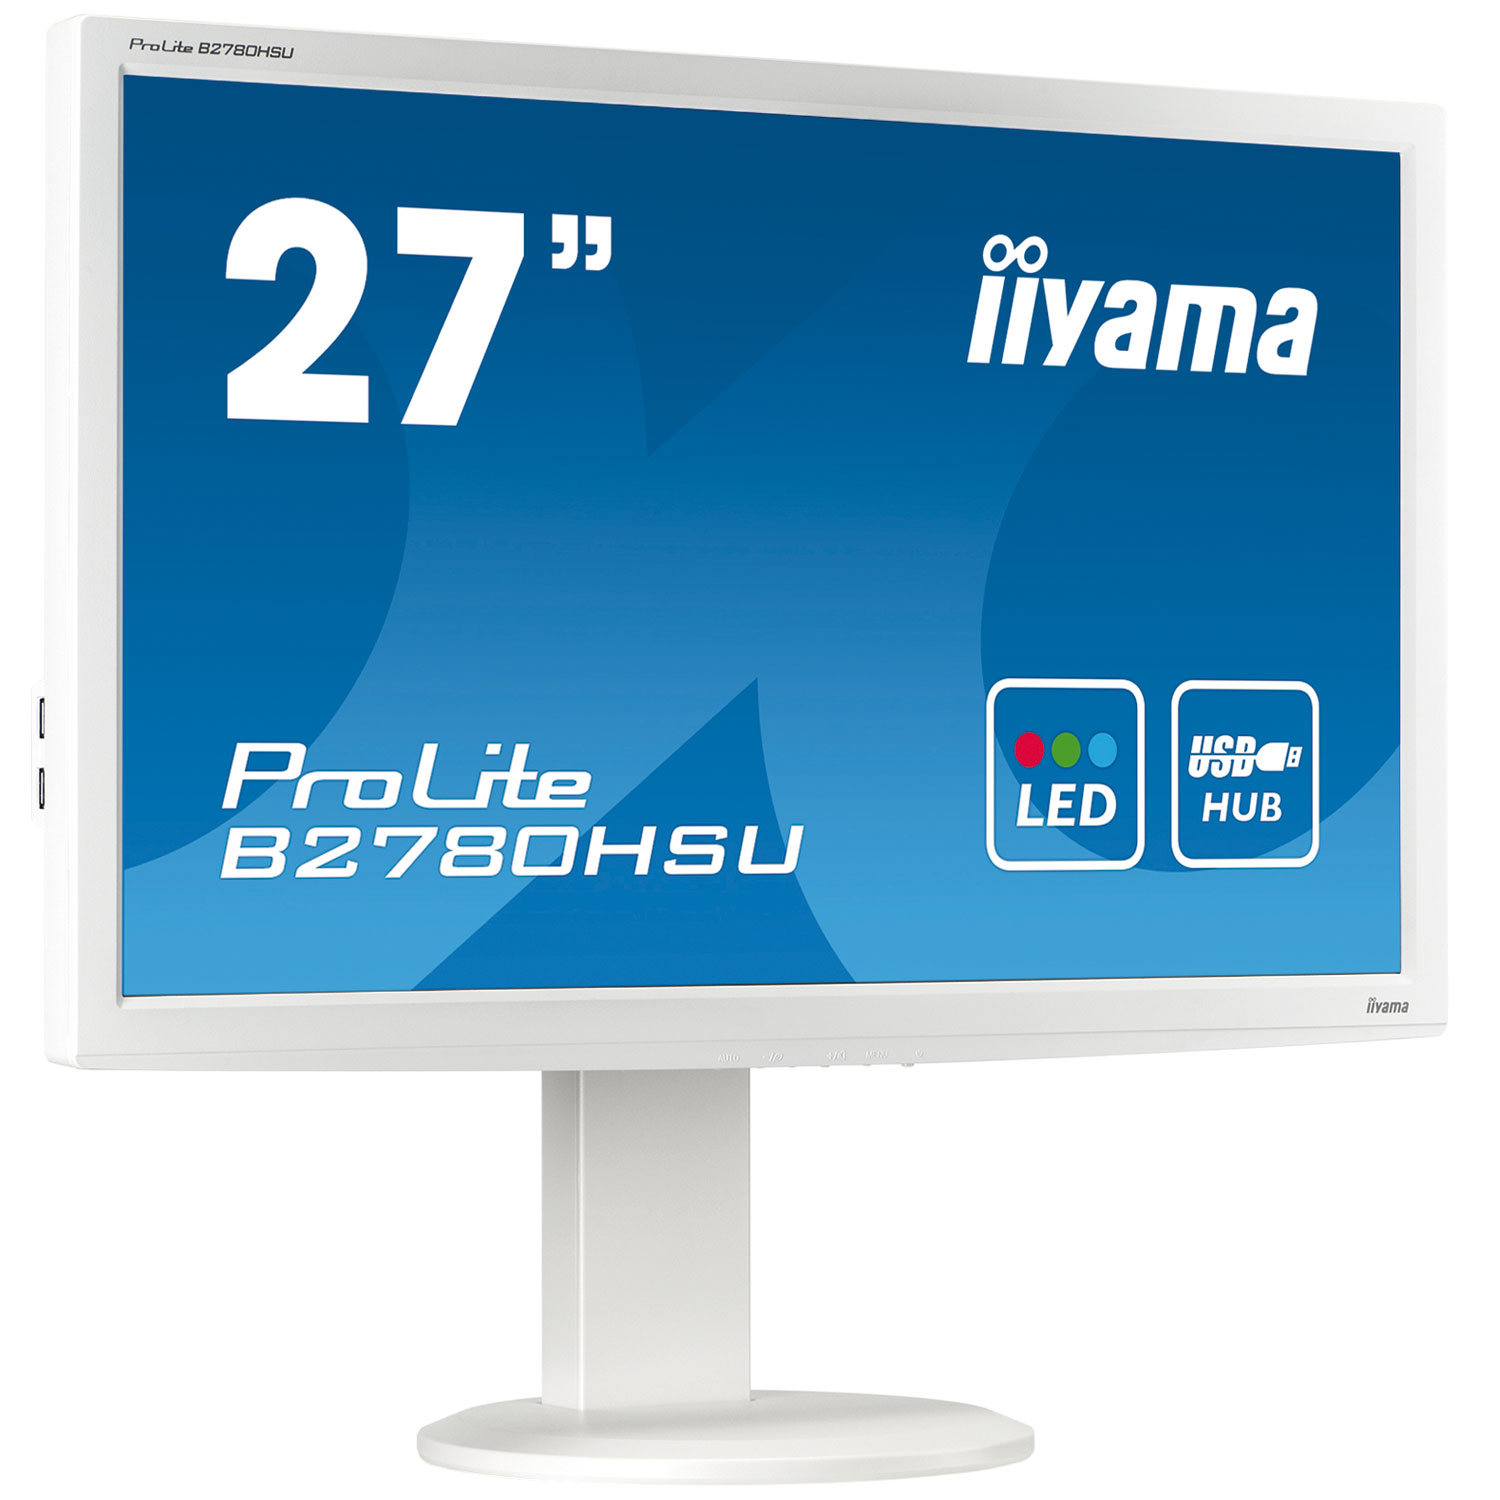 iiyama 27 led prolite b2780hsu blanc ecran pc iiyama sur ldlc. Black Bedroom Furniture Sets. Home Design Ideas